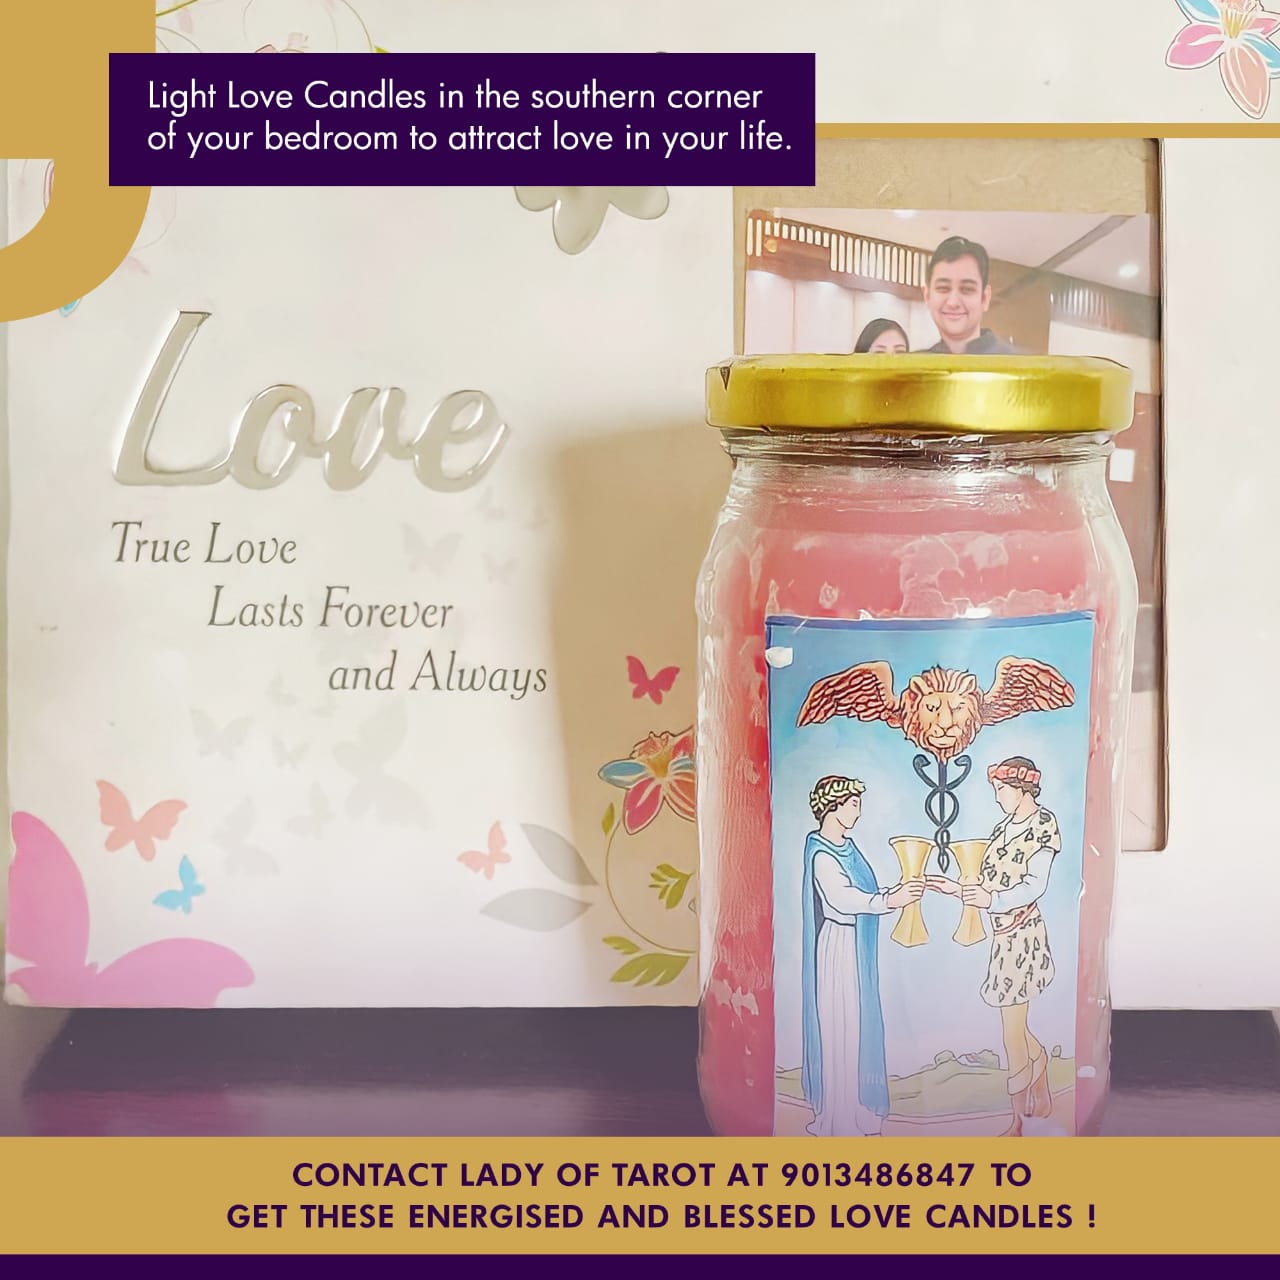 Light Love Candles in the southern corner of your bedroom to attract love in your life.